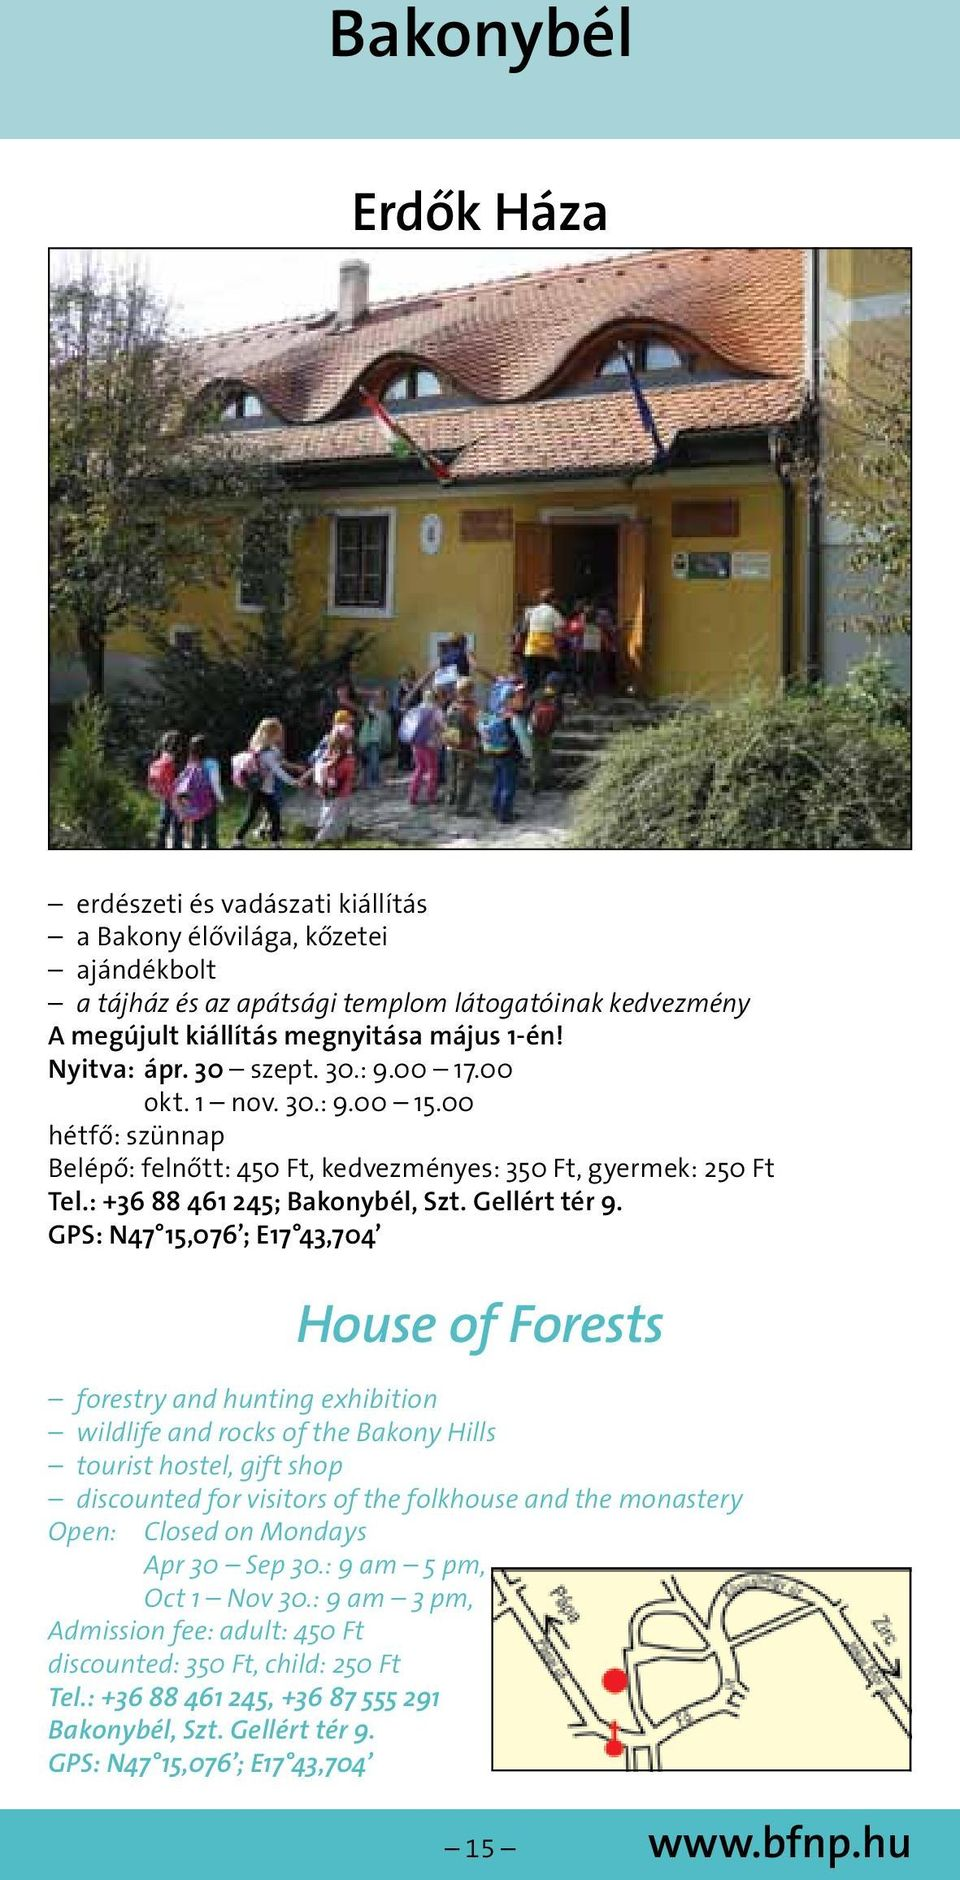 GPS: N47 15,076 ; E17 43,704 House of Forests forestry and hunting exhibition wildlife and rocks of the Bakony Hills tourist hostel, gift shop discounted for visitors of the folkhouse and the